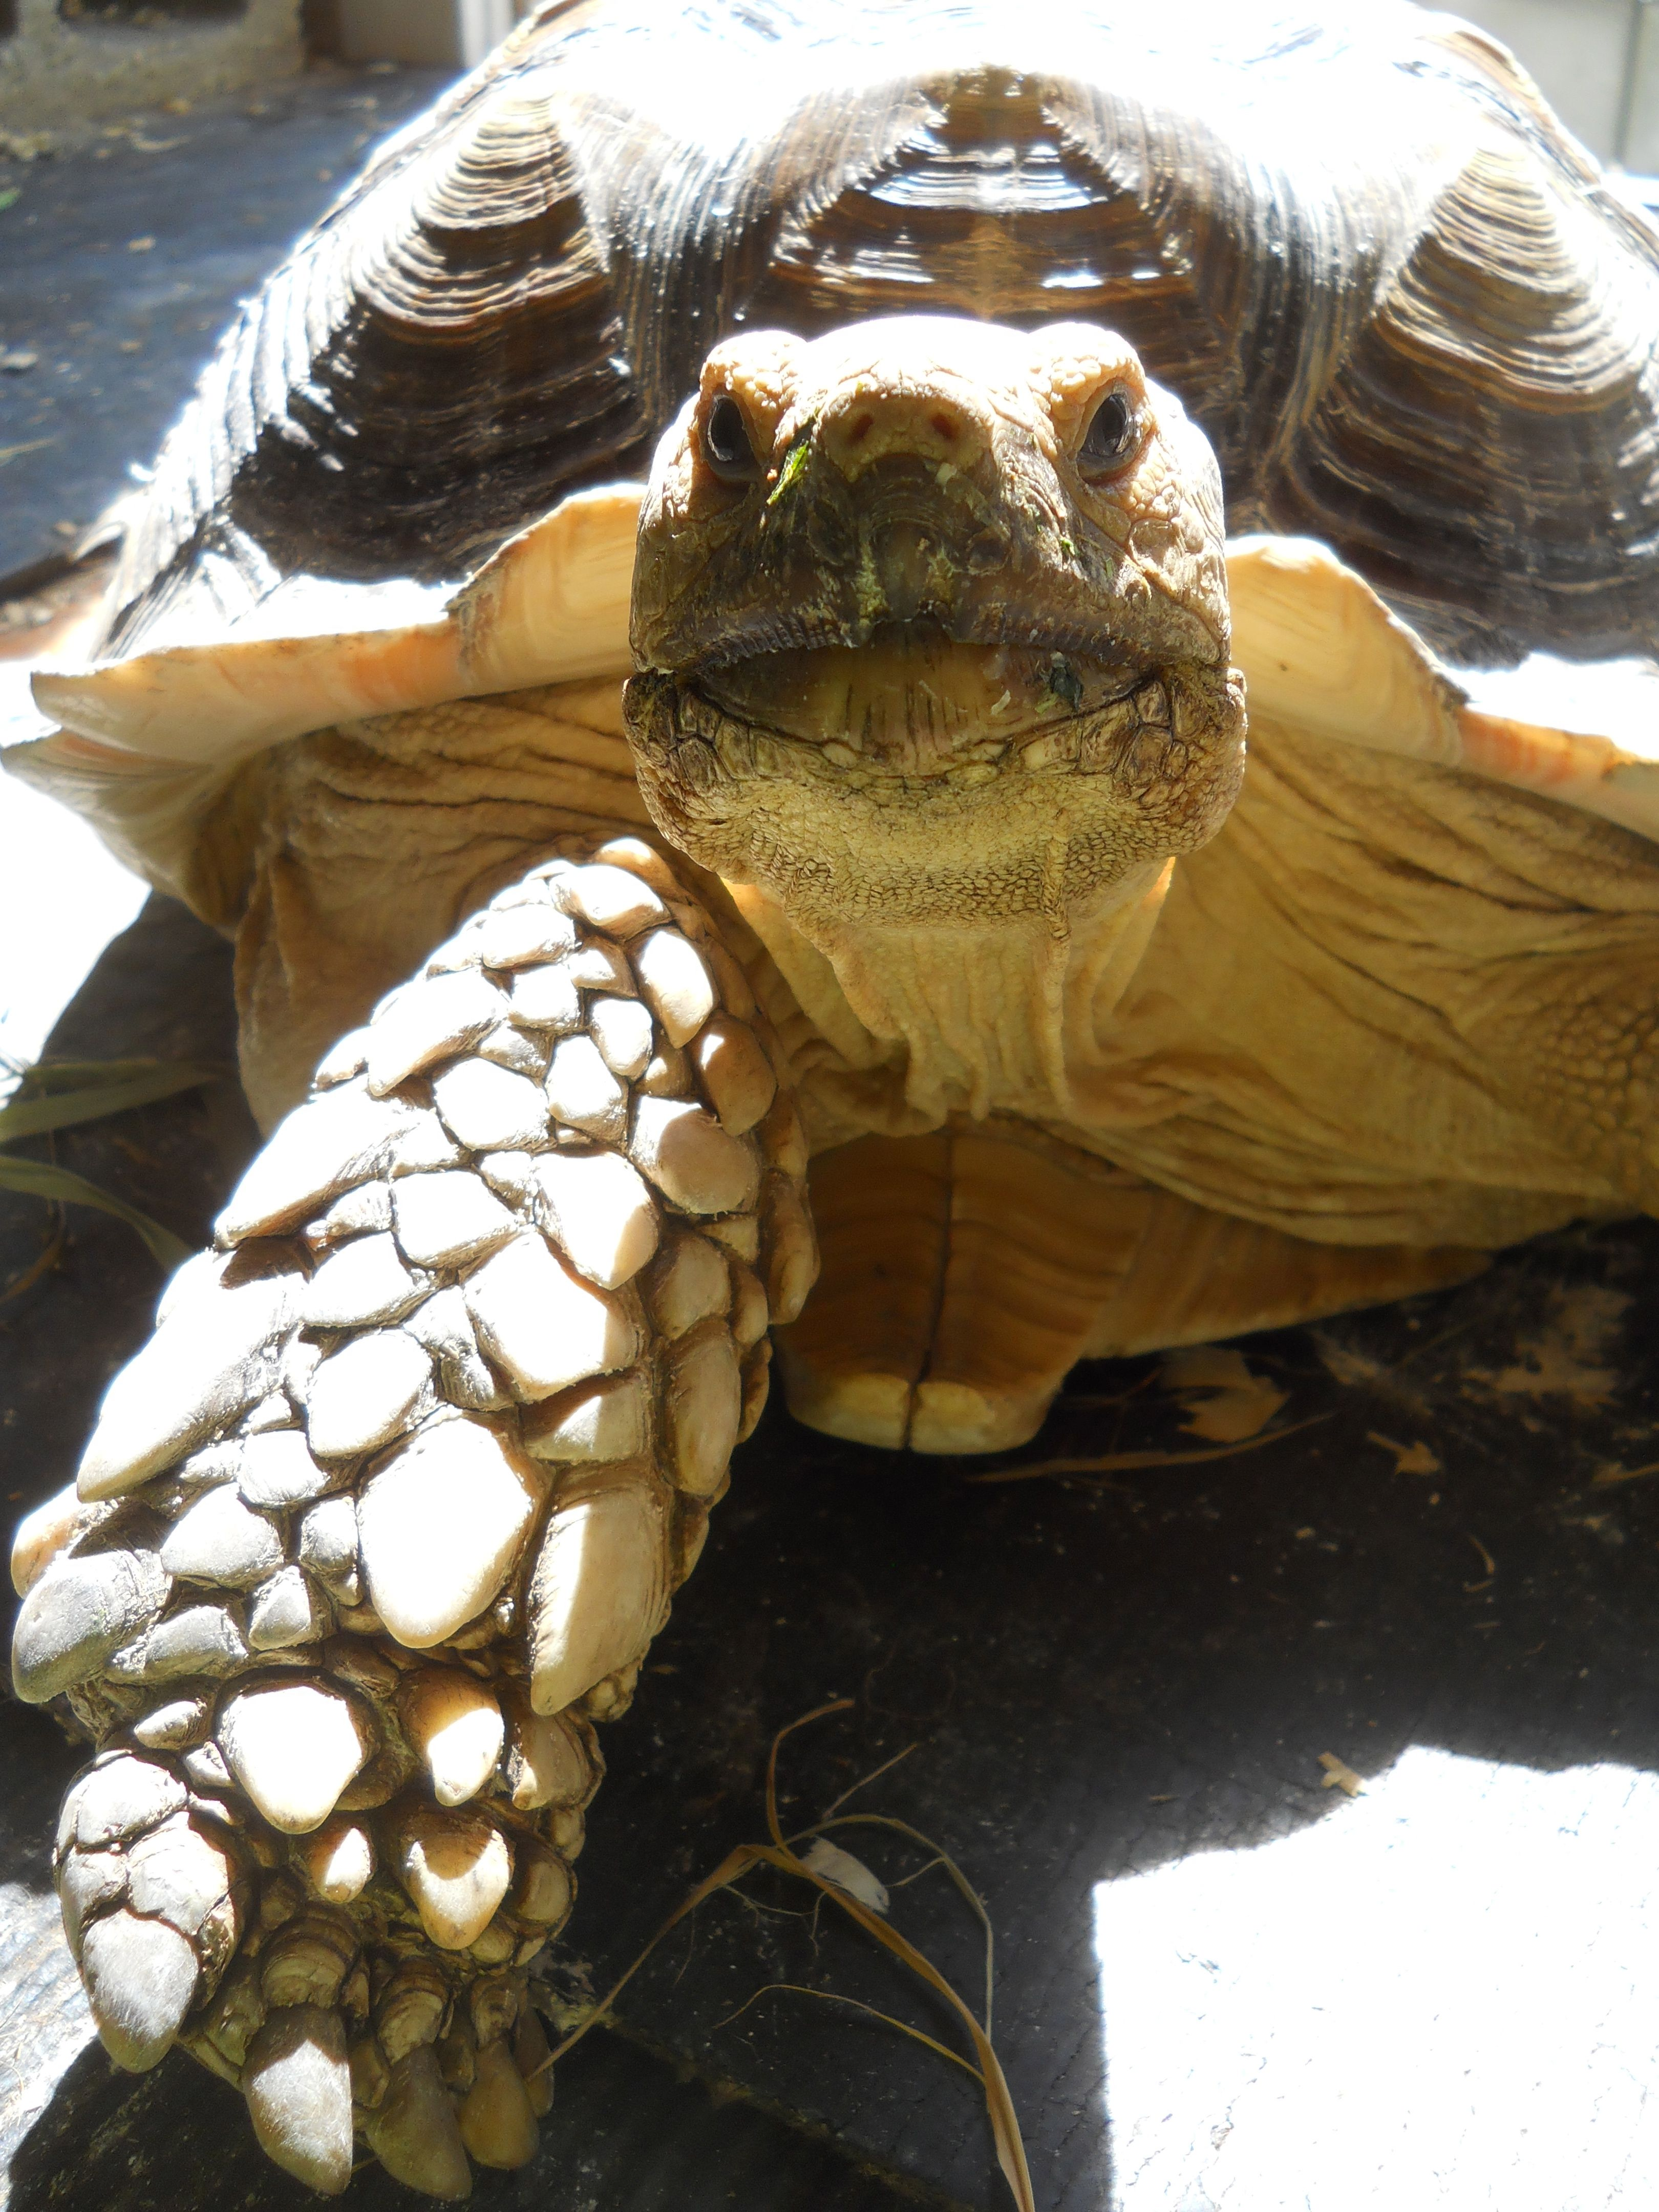 sulcata tortoise | the old ones | Pinterest | Tortugas, Tortugas ...